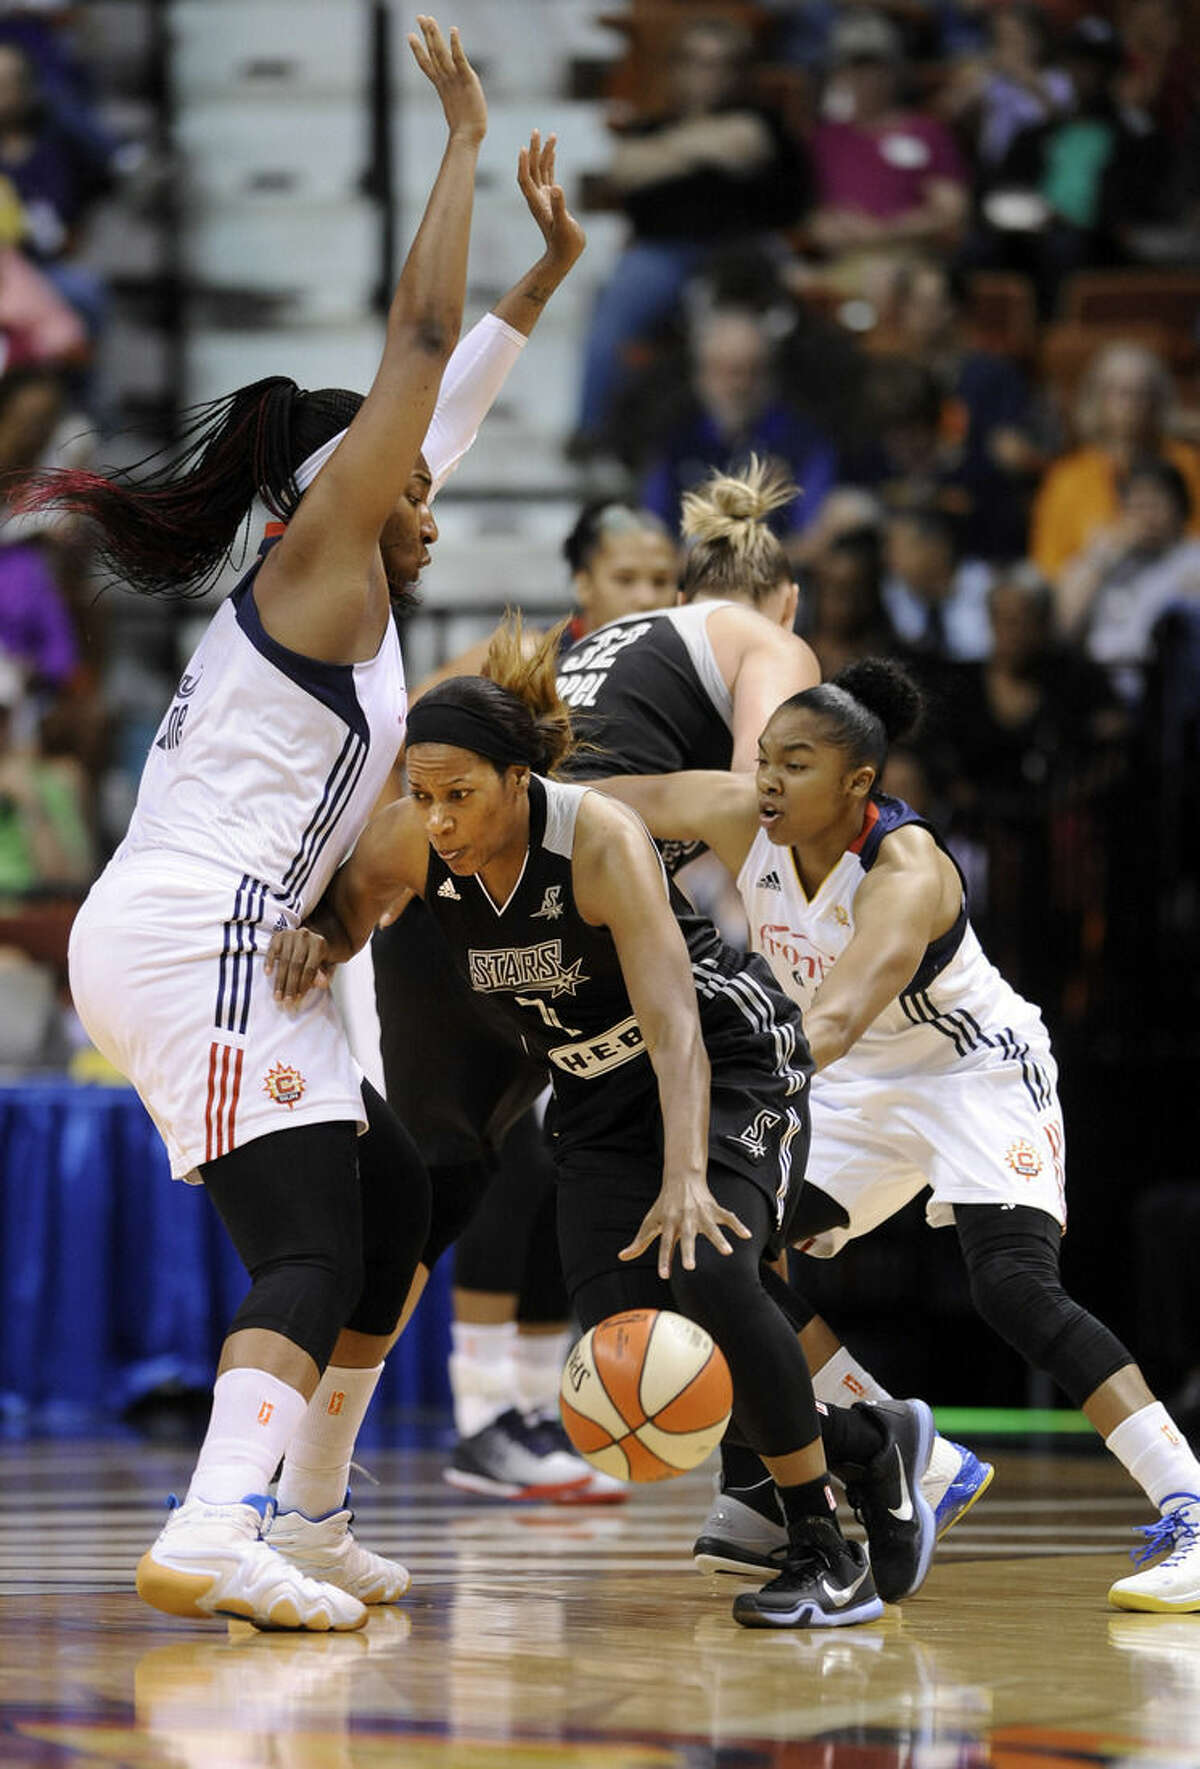 San Antonio Stars's Jia Perkins (7) drives past Connecticut Sun's Kelsey Bone (3) during the first half of a WNBA basketball game in Uncasville, Conn., on Tuesday, Aug. 4, 2015. (AP Photo/Fred Beckham)